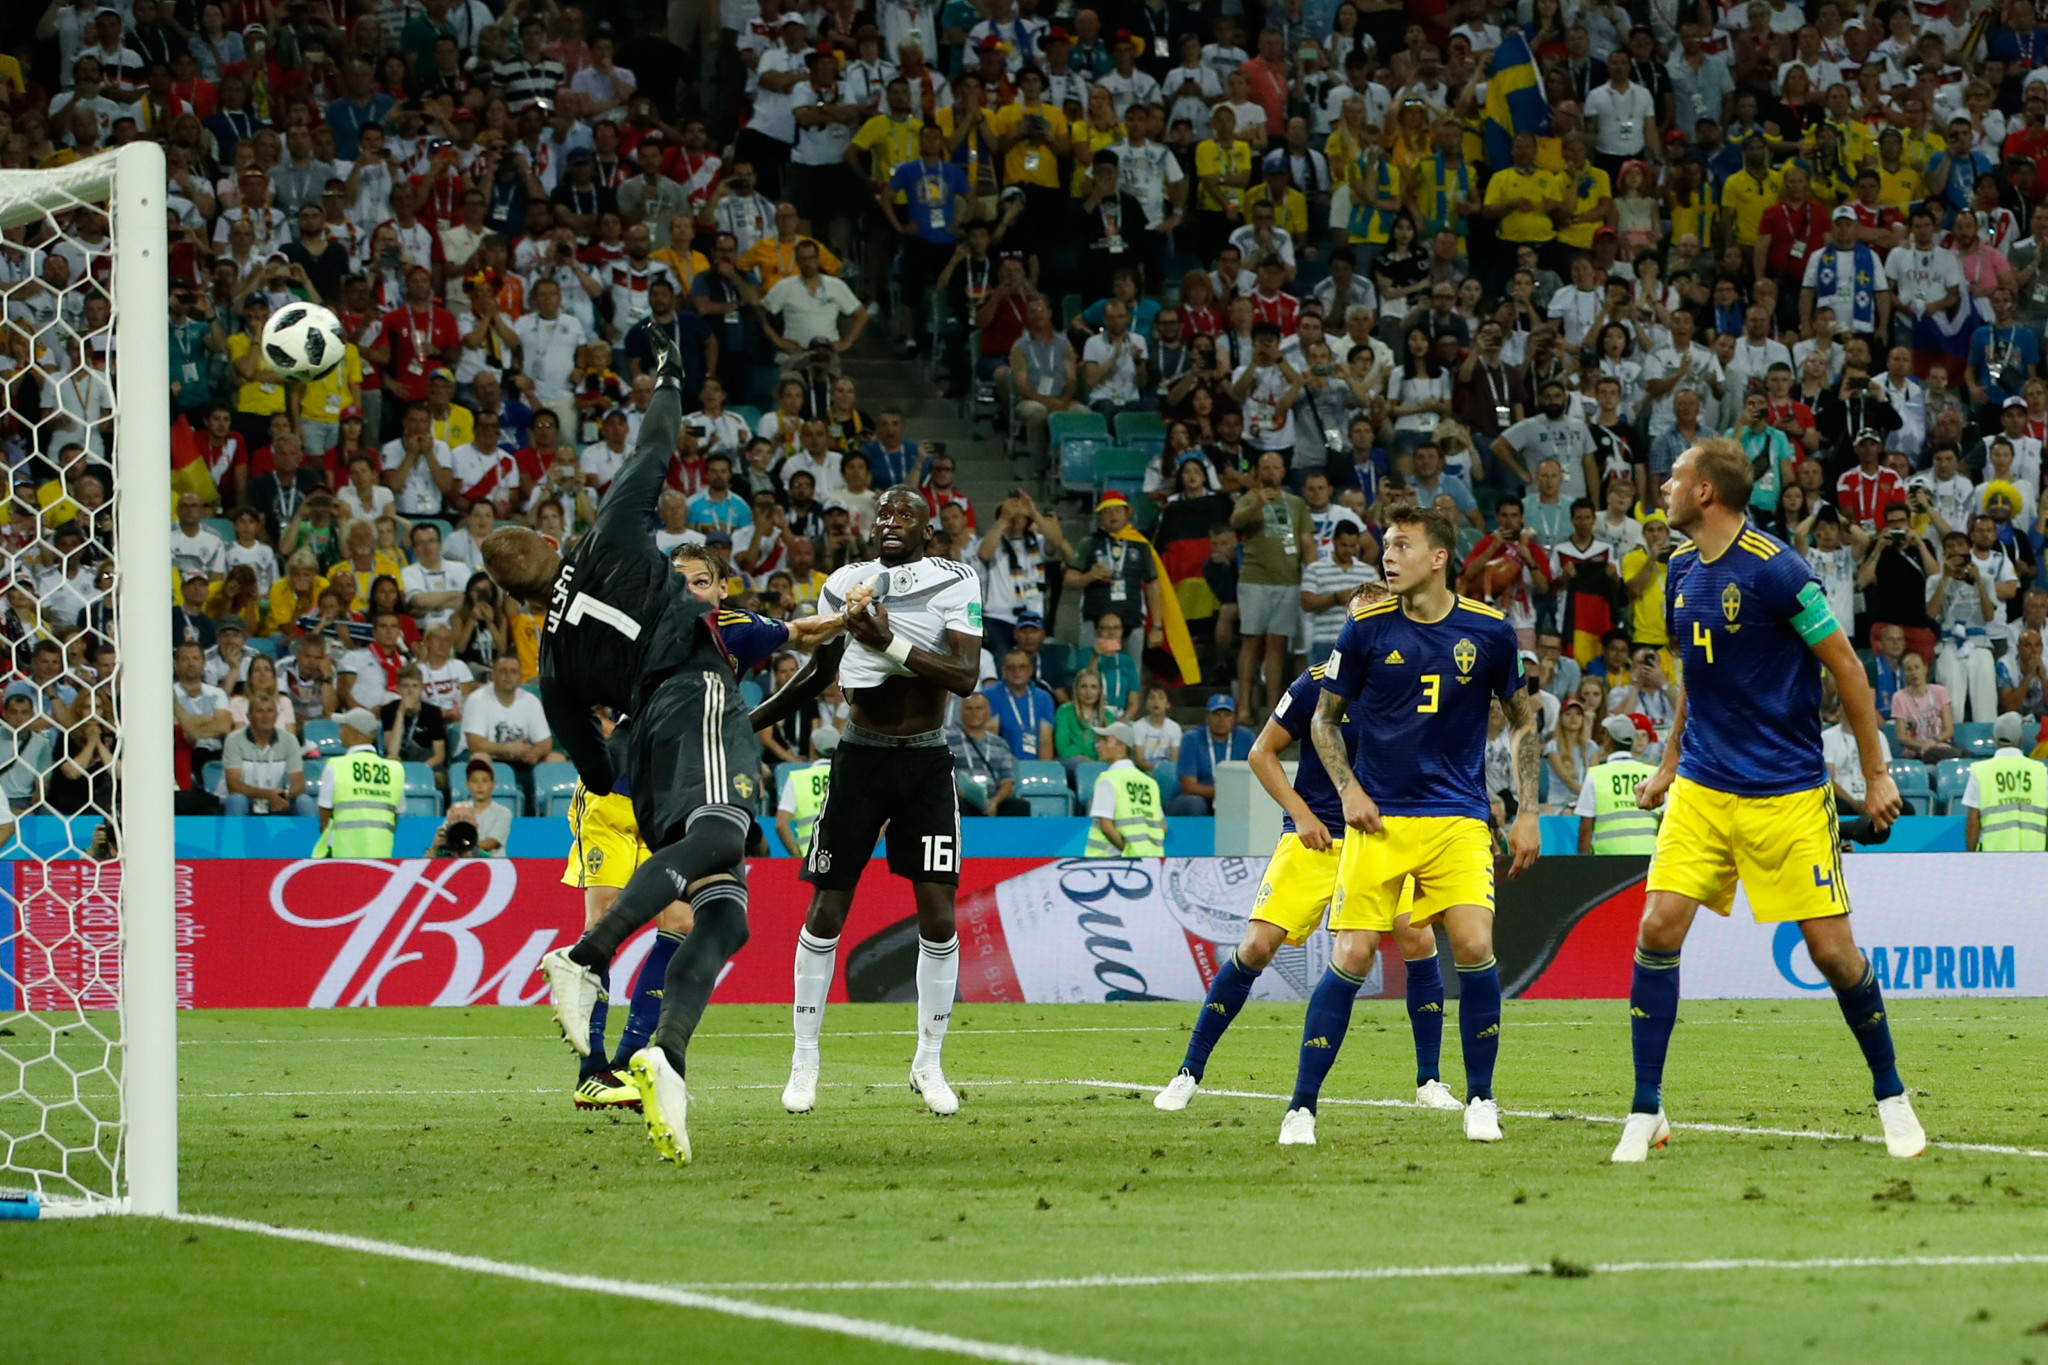 German team officials fined and warned for sparking touchline row in FIFA World Cup win over Sweden